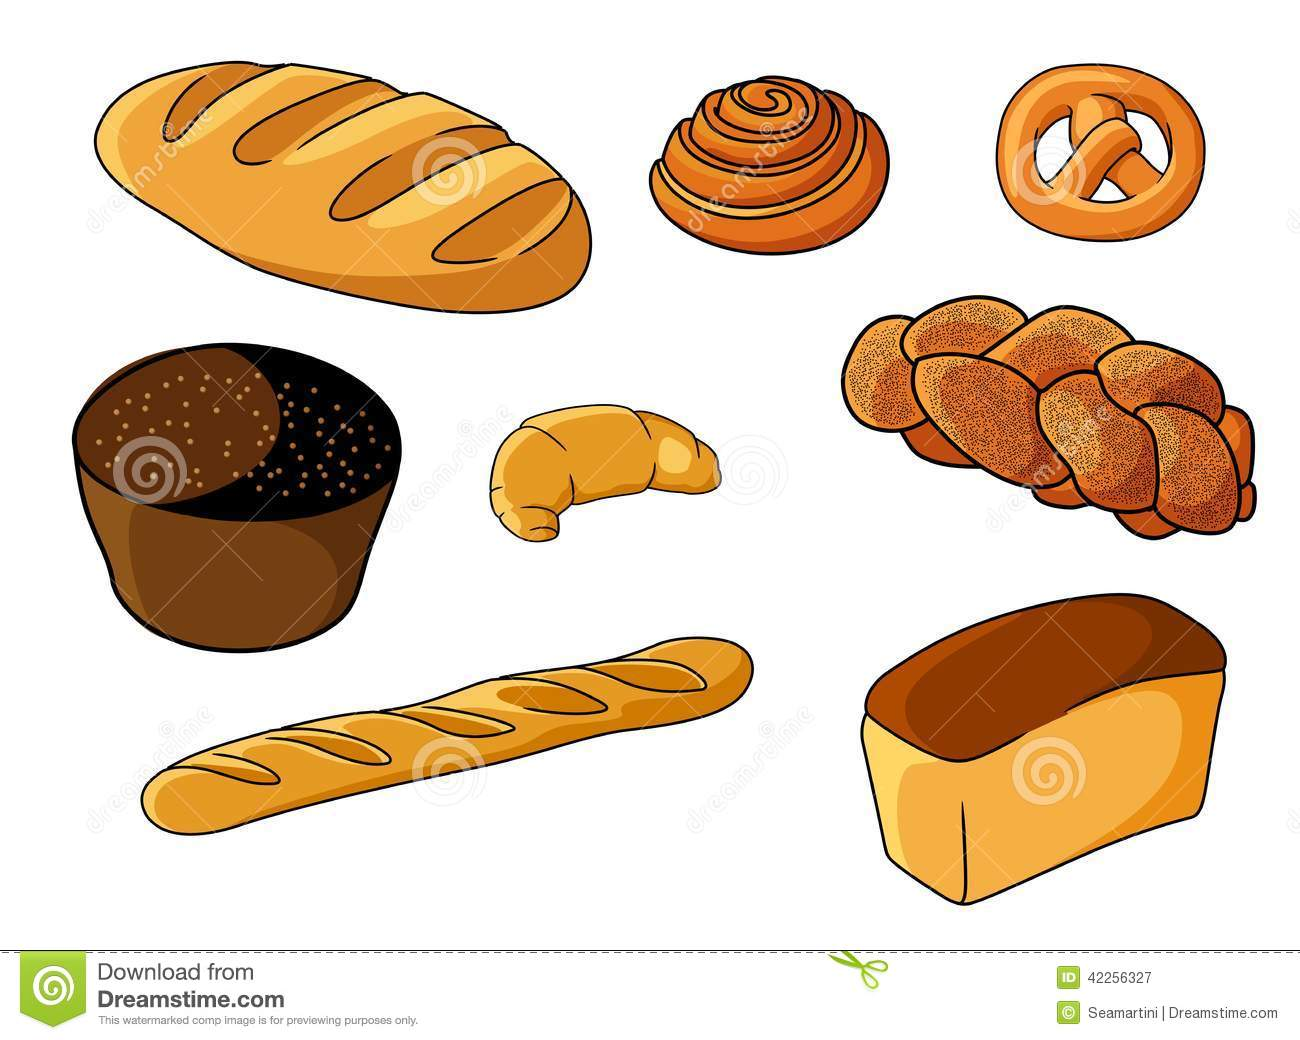 ... , plaited loaf, white bread and roll, vector illustration on white